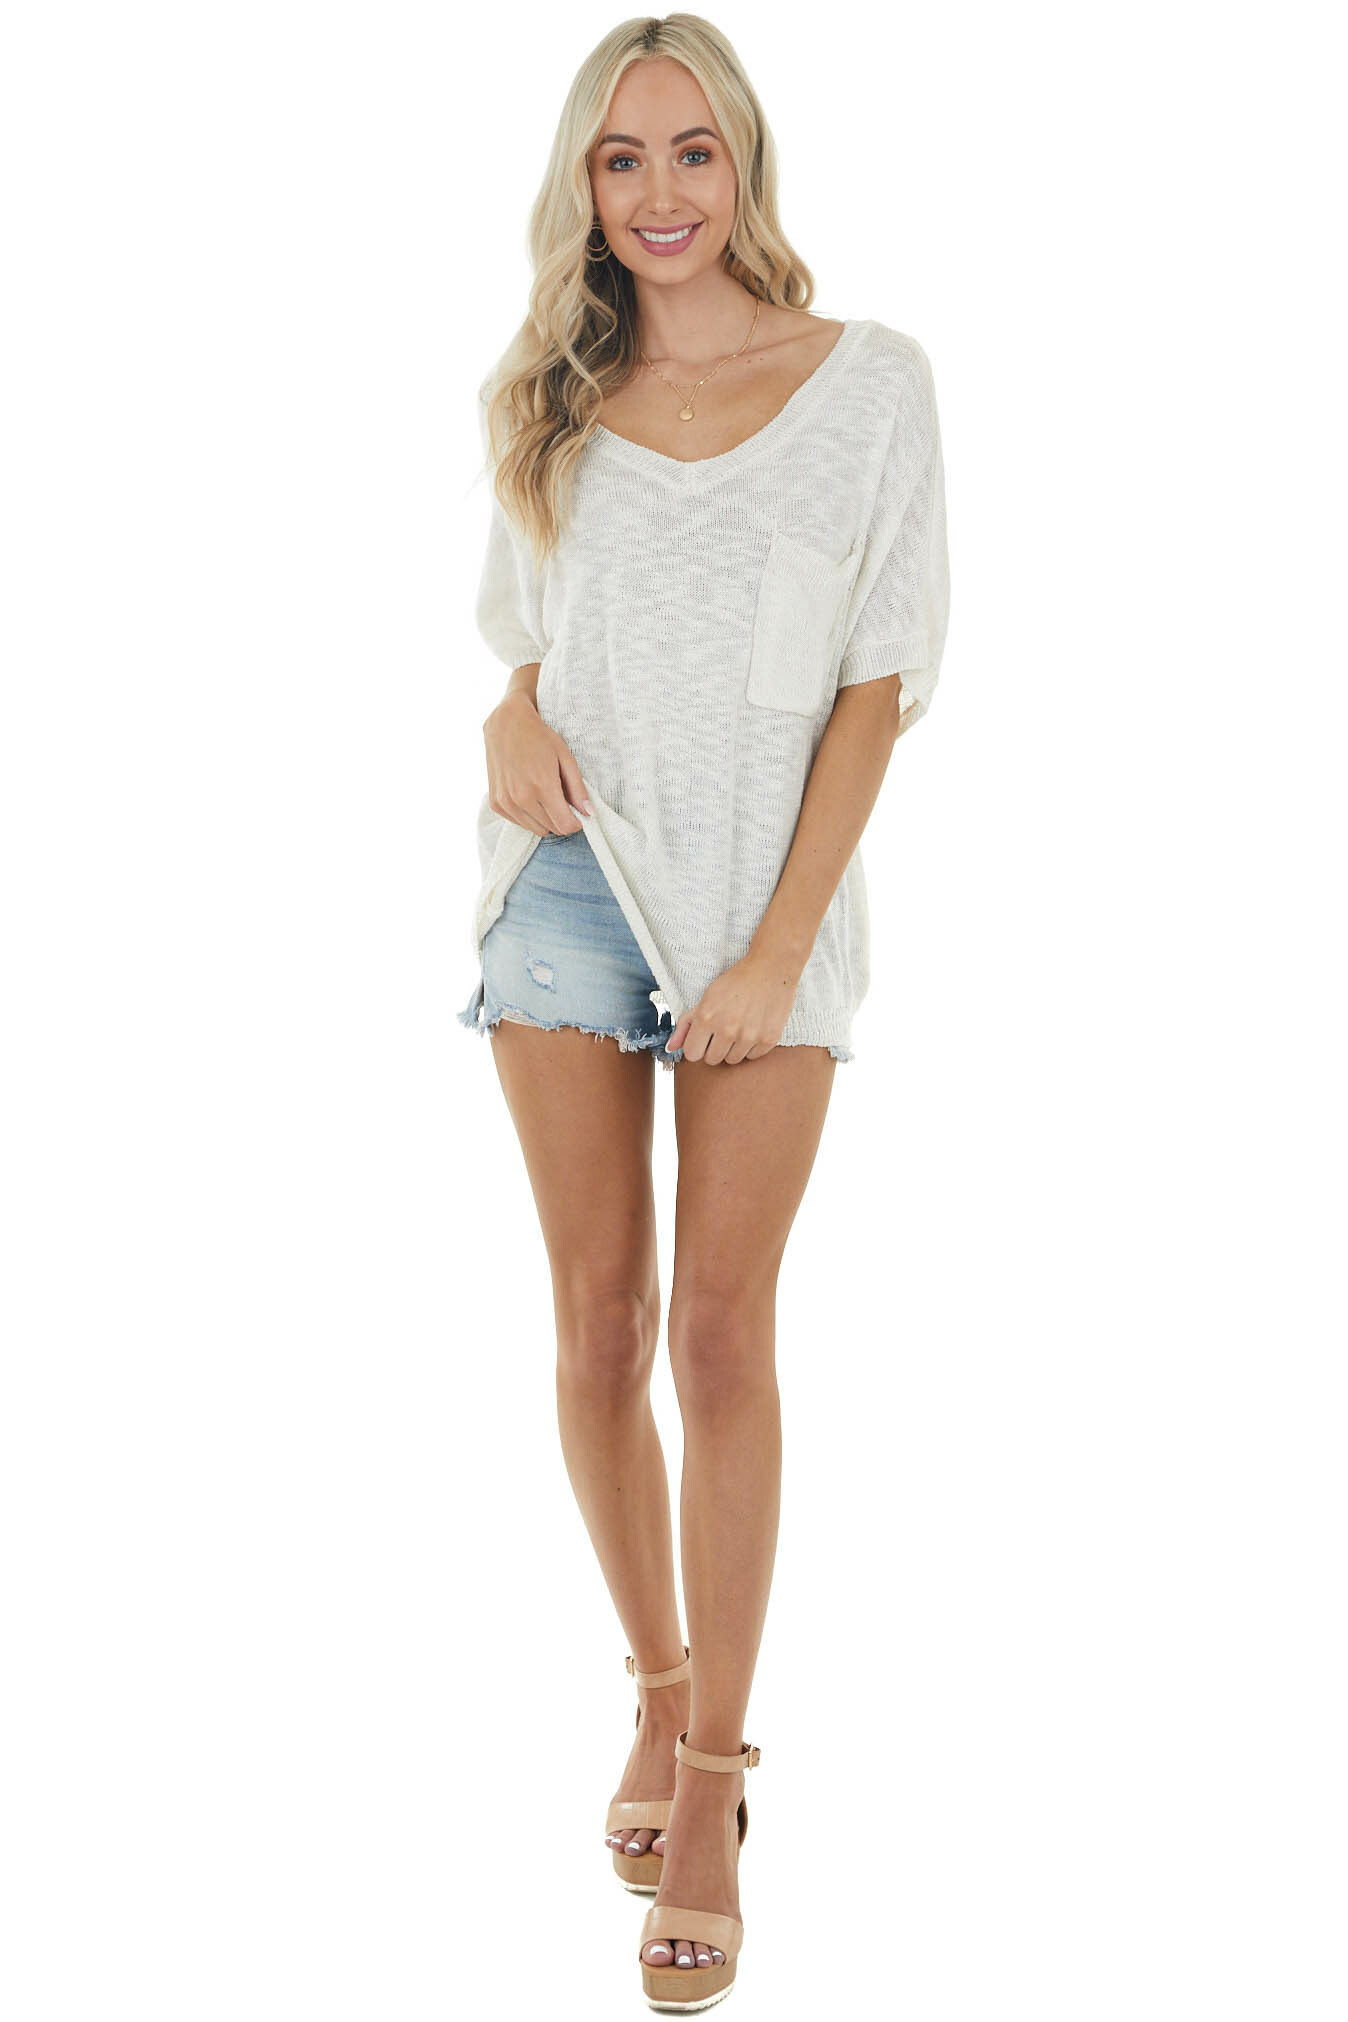 Ivory Lightweight Stretchy Knit Top with Pocket Detail